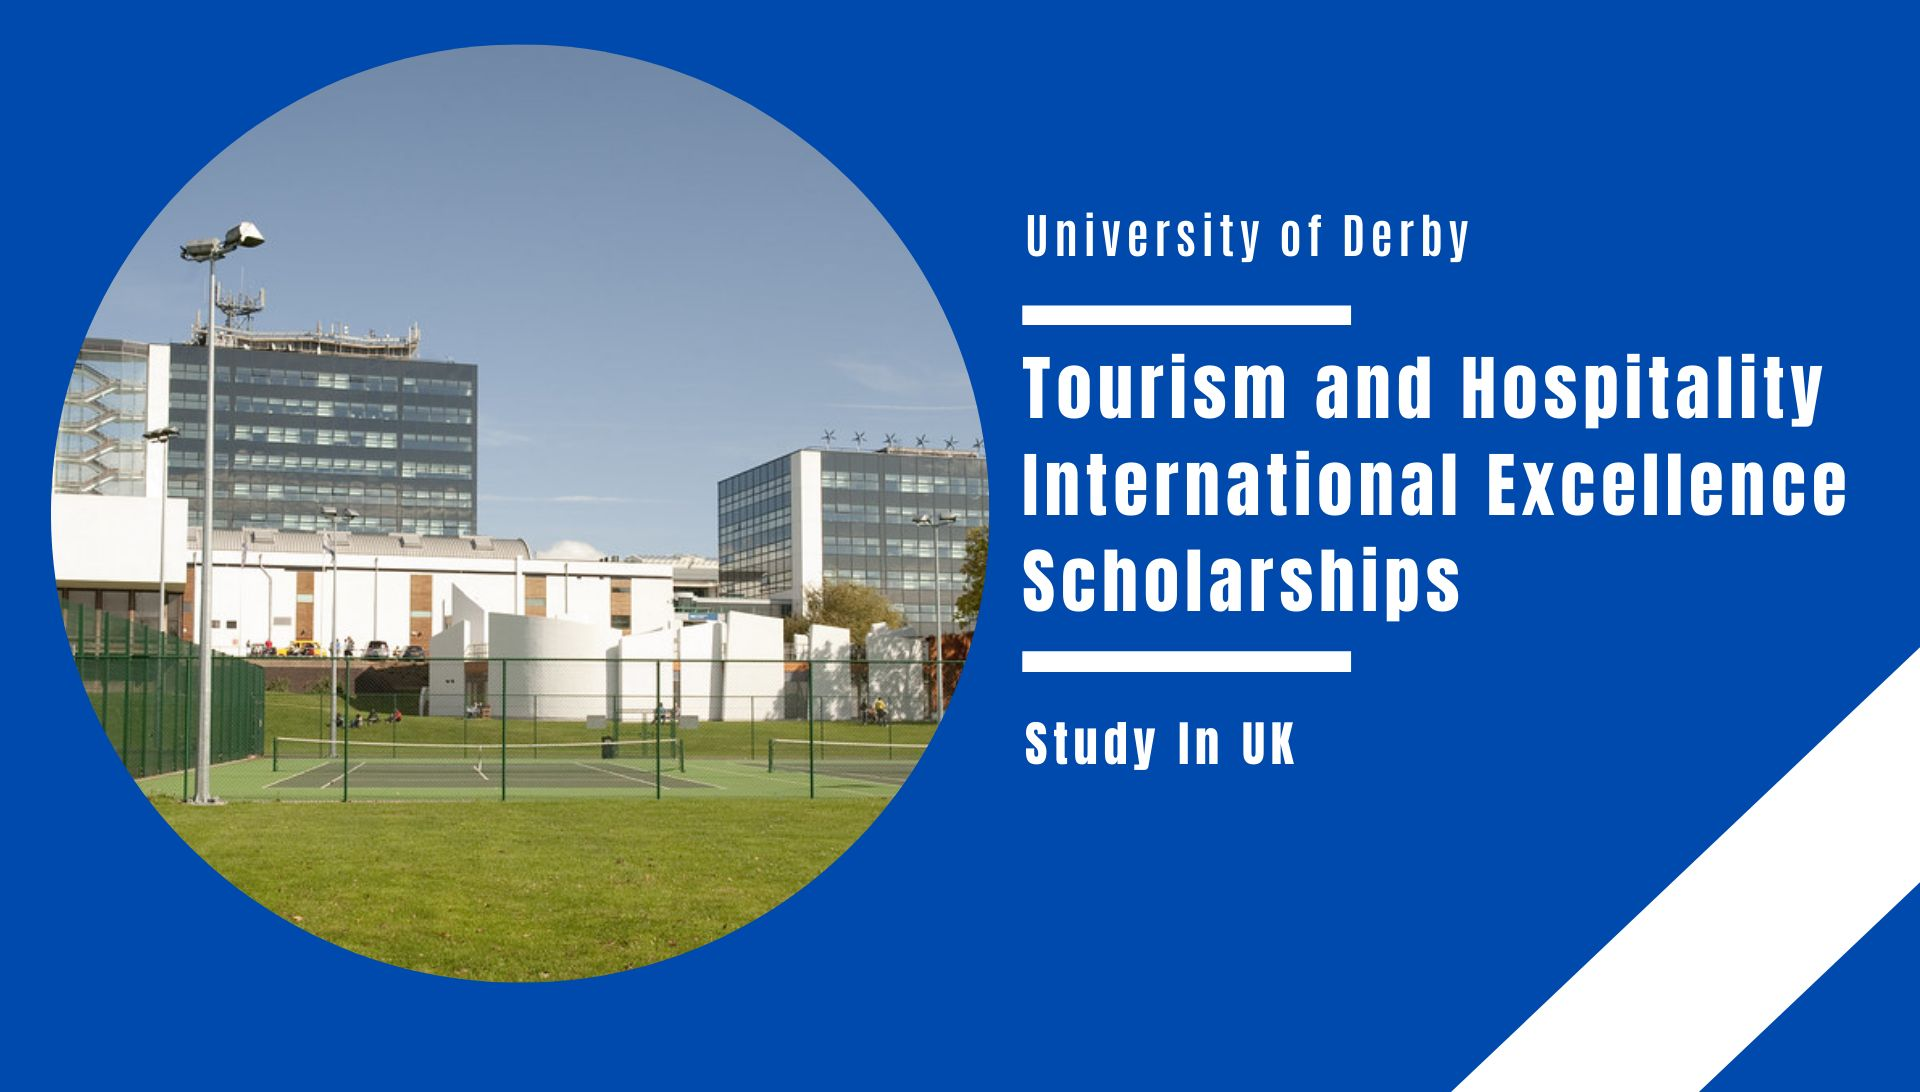 University of Derby Tourism and Hospitality International Excellence Scholarships in UK, 2021